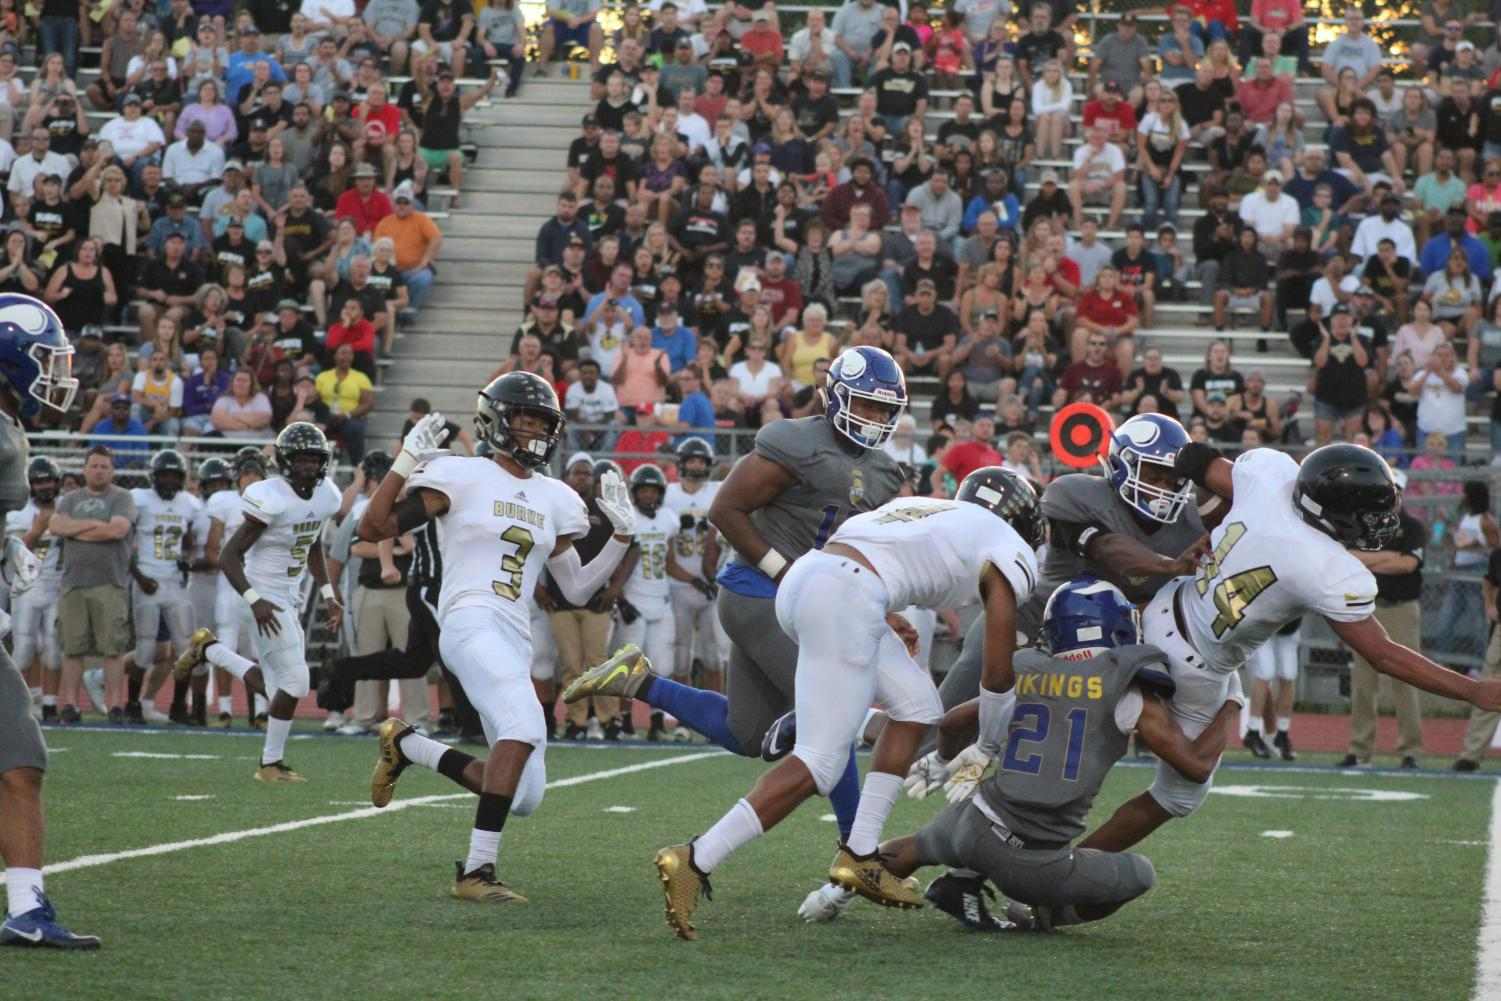 """Tyree Stovall, 12, number 21, tackles Omaha Burke's number 14 on September 14. Stovall has only had Luedtke as a coach for a year but he really likes his coaching style. """"He keeps you motivated and works just as hard as anyone else,"""" Stovall said. Photo by Gabby Push"""